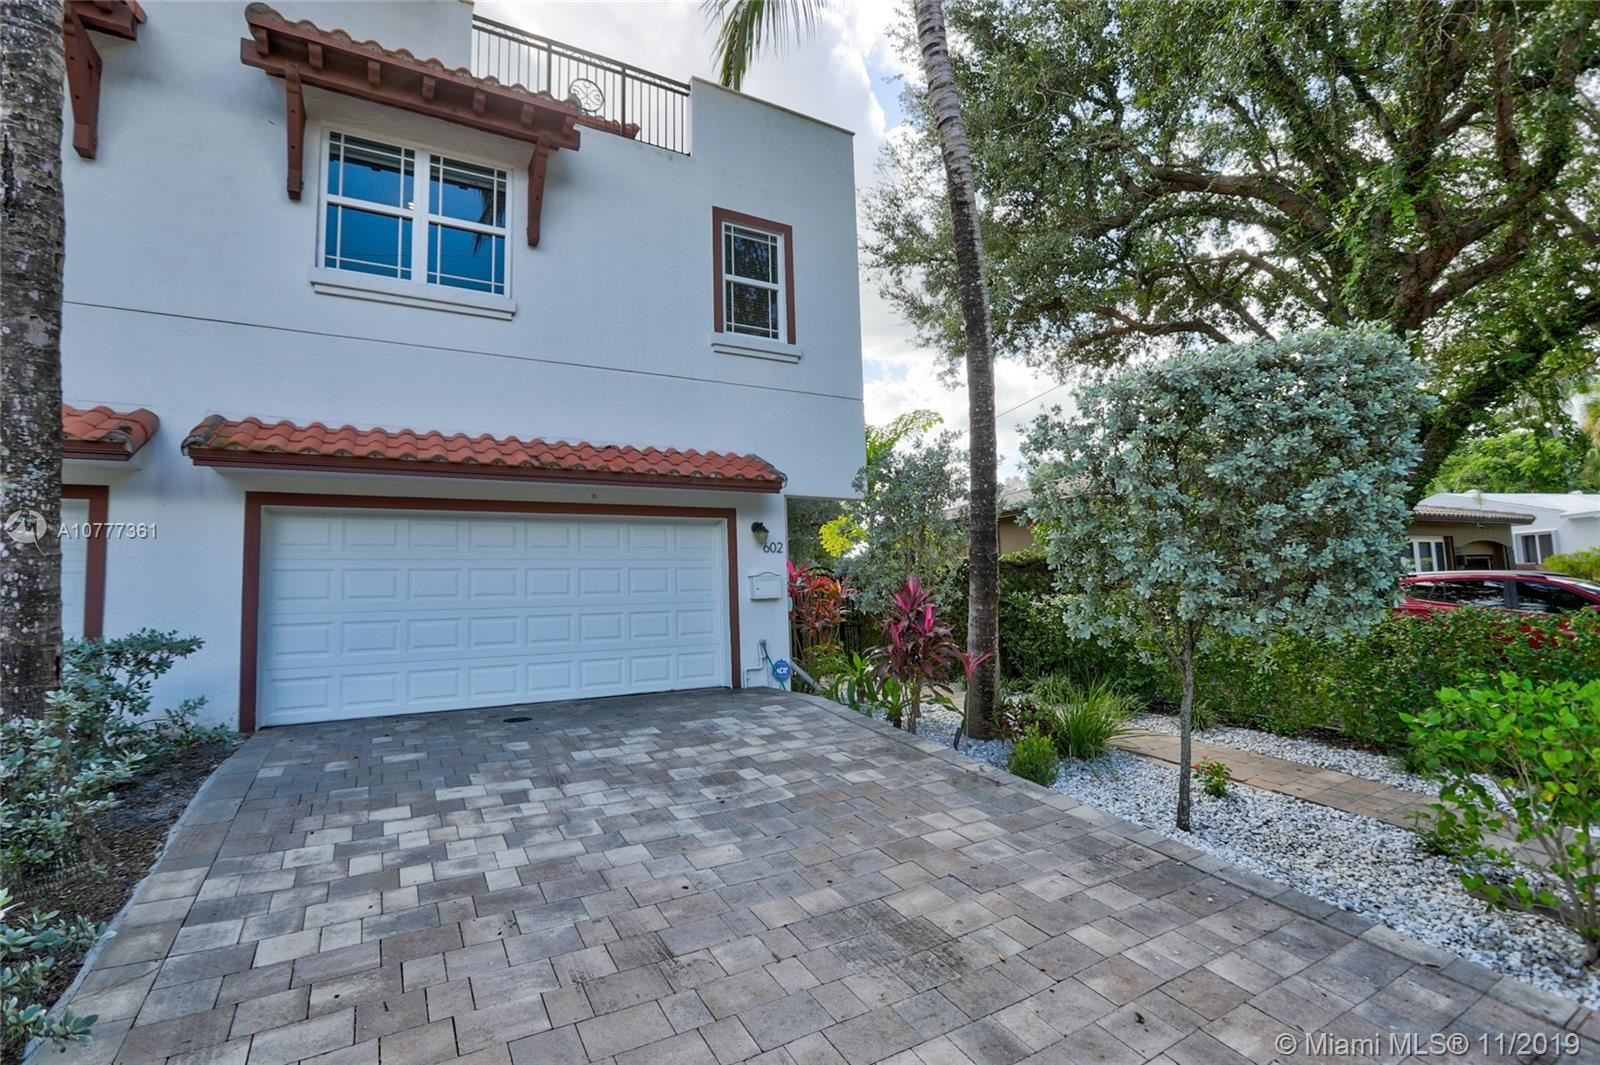 602 SW 11th Ct, Fort Lauderdale, FL 33315 - #: A10777361